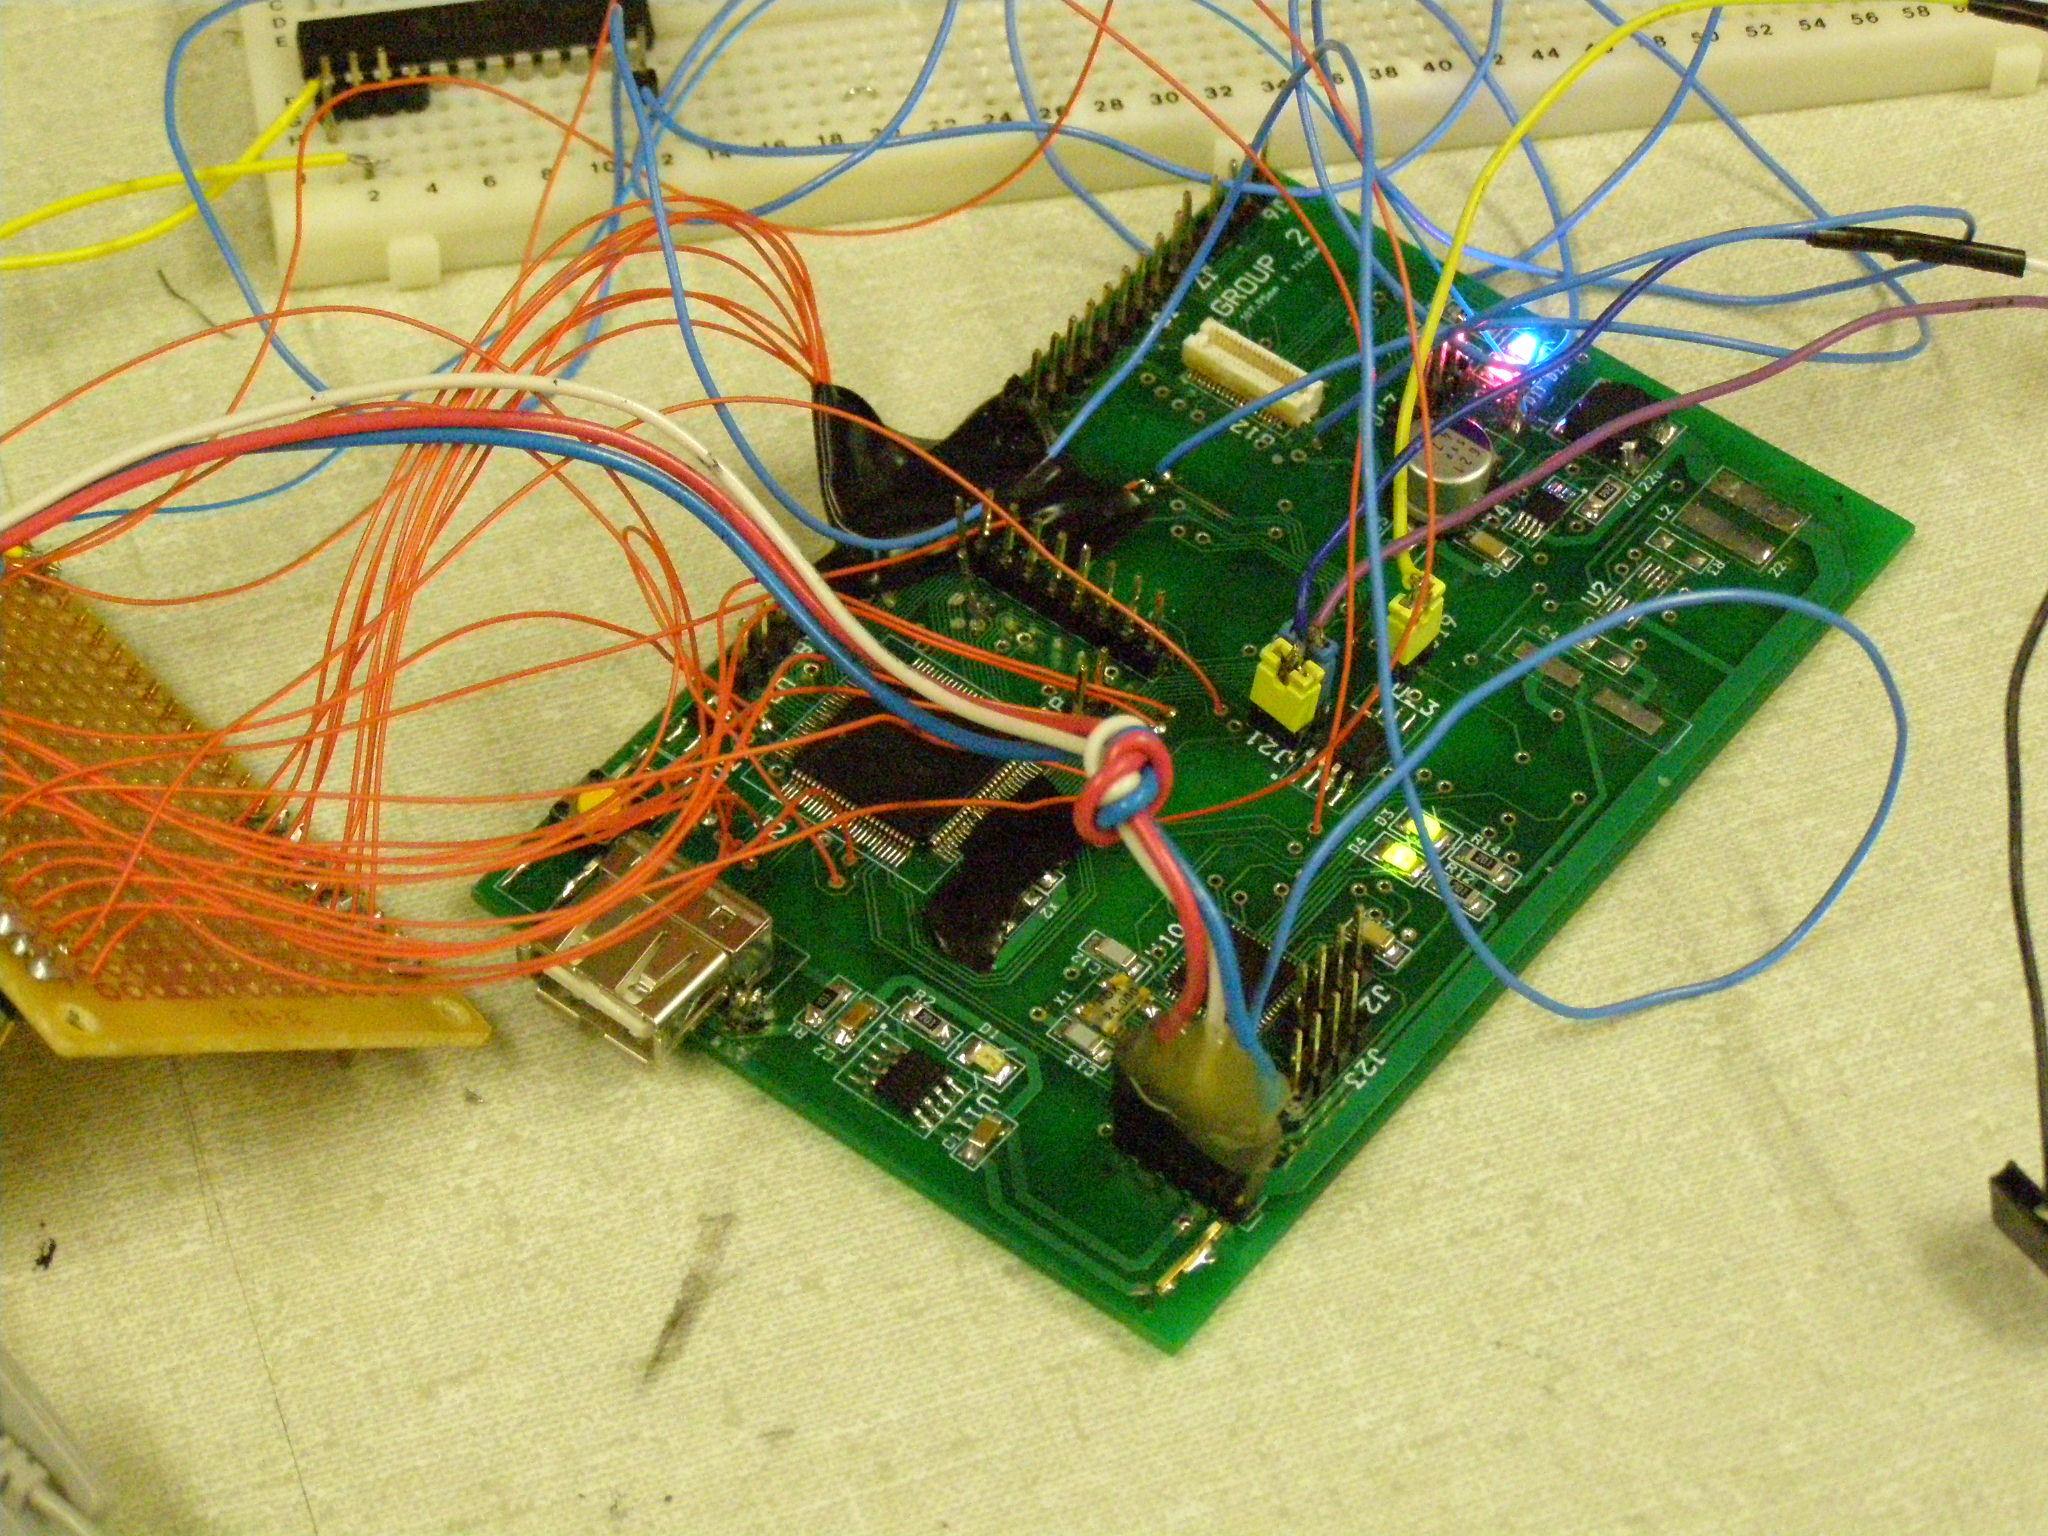 Yucel Parsaks Lab Notebook Basic Circuit And Breadboard Hacks Mods Circuitry We Have 16 Bits Address 8 Data Lines Since Did Not A Header For Each Pins I Soldered To An External Using Vias